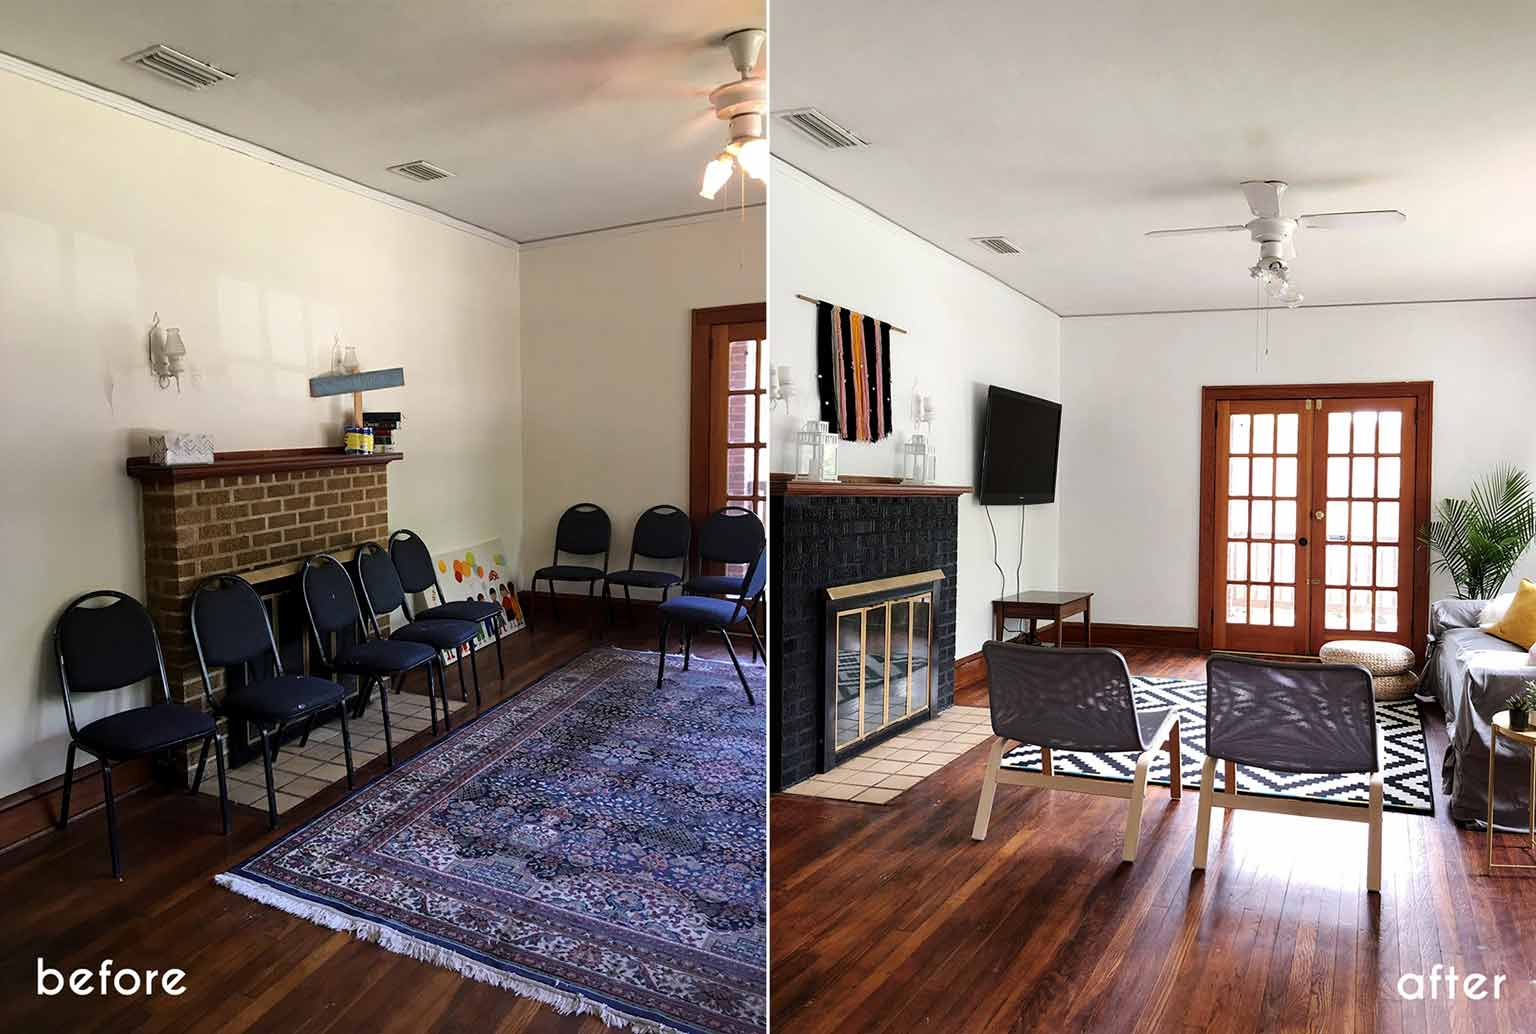 Before and after - Modern minimalist room makeover on a budget - That Homebird Life Blog